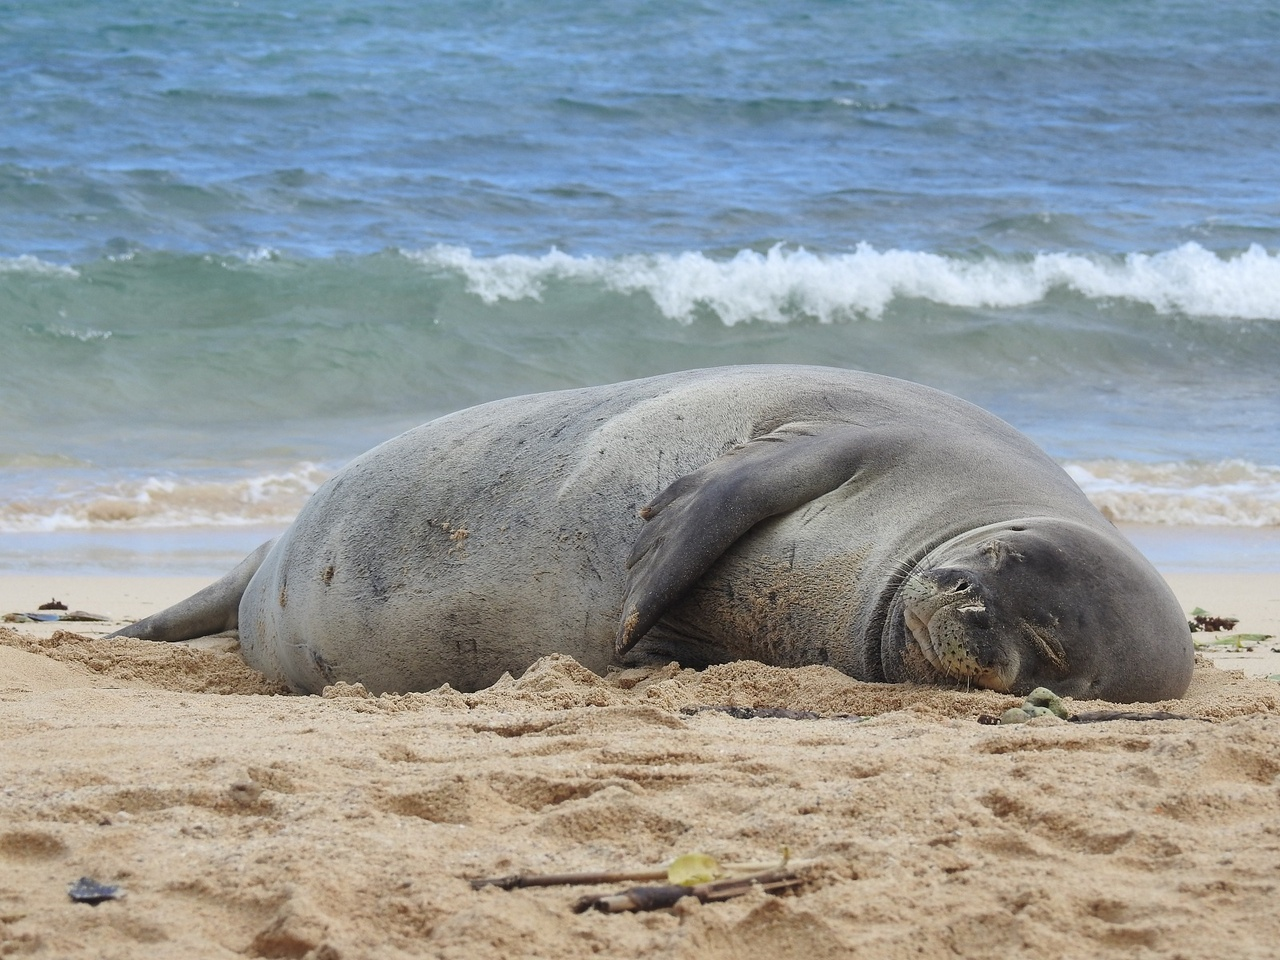 Monk seal lying on beach with ocean behind.